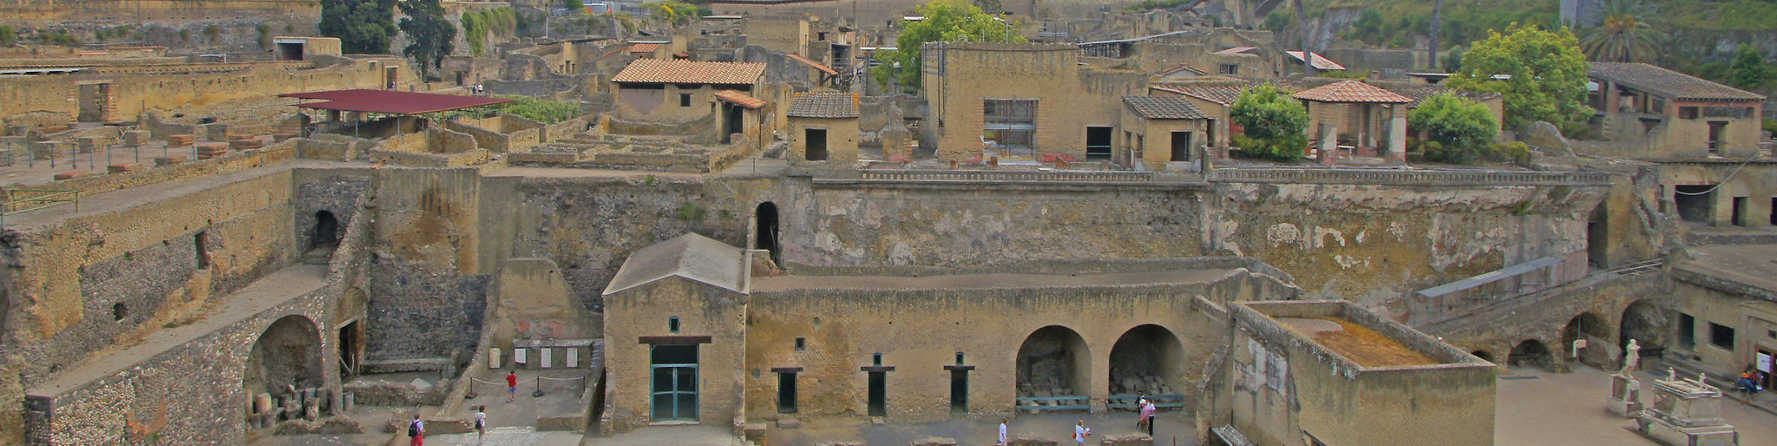 Pompeii vs Herculaneum – What's the Difference?